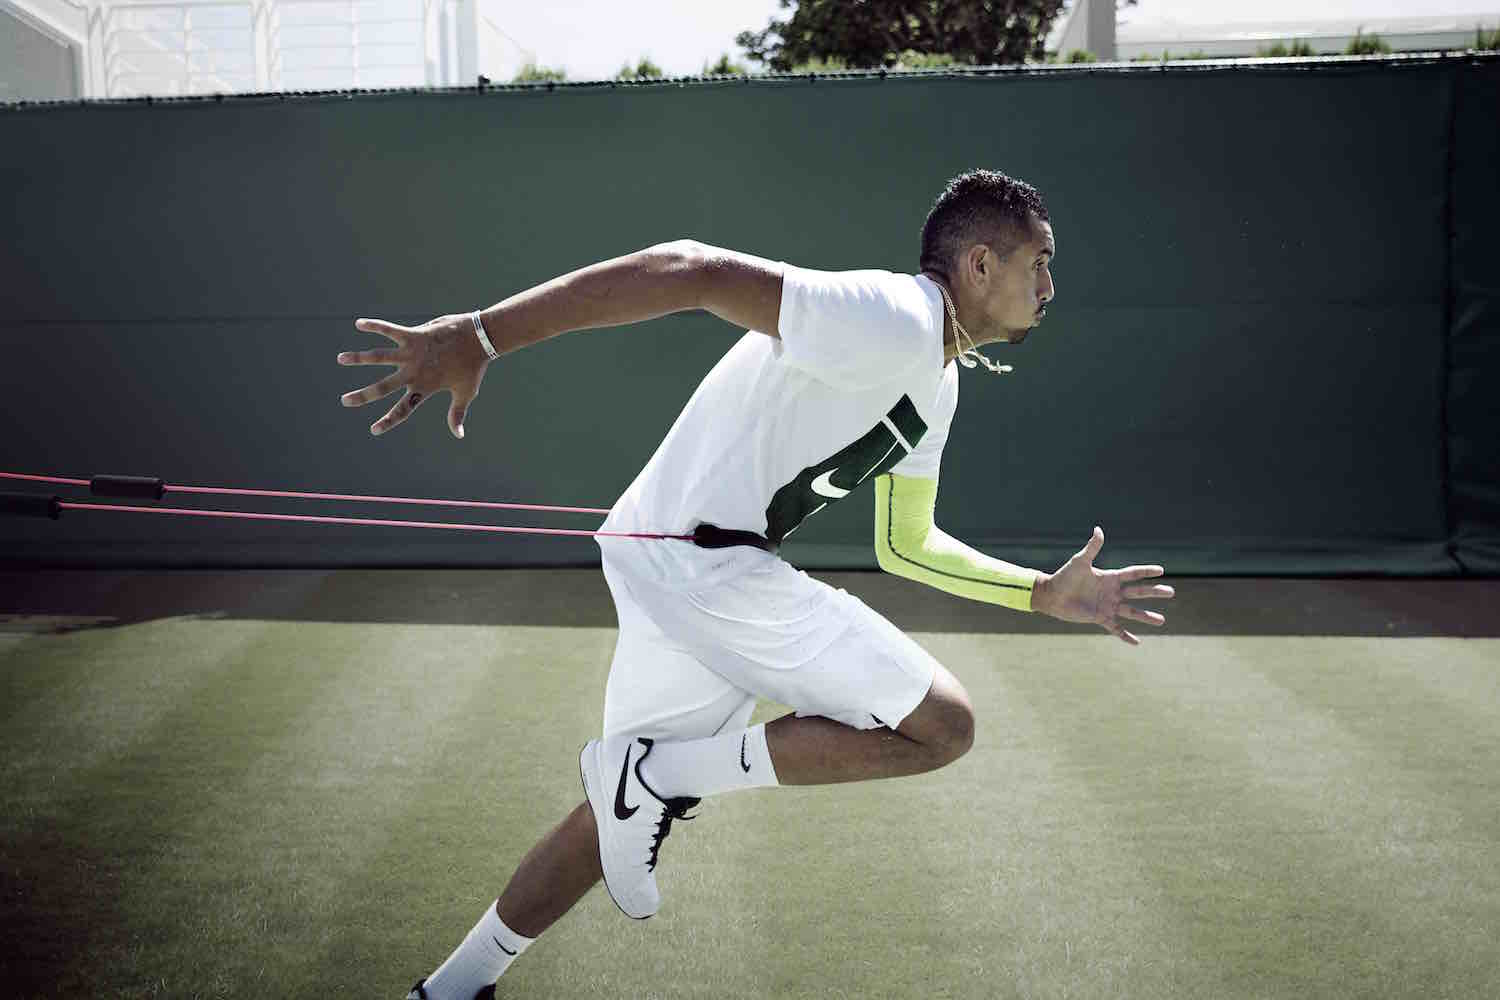 Nick Kyrgios NikeCourt 1